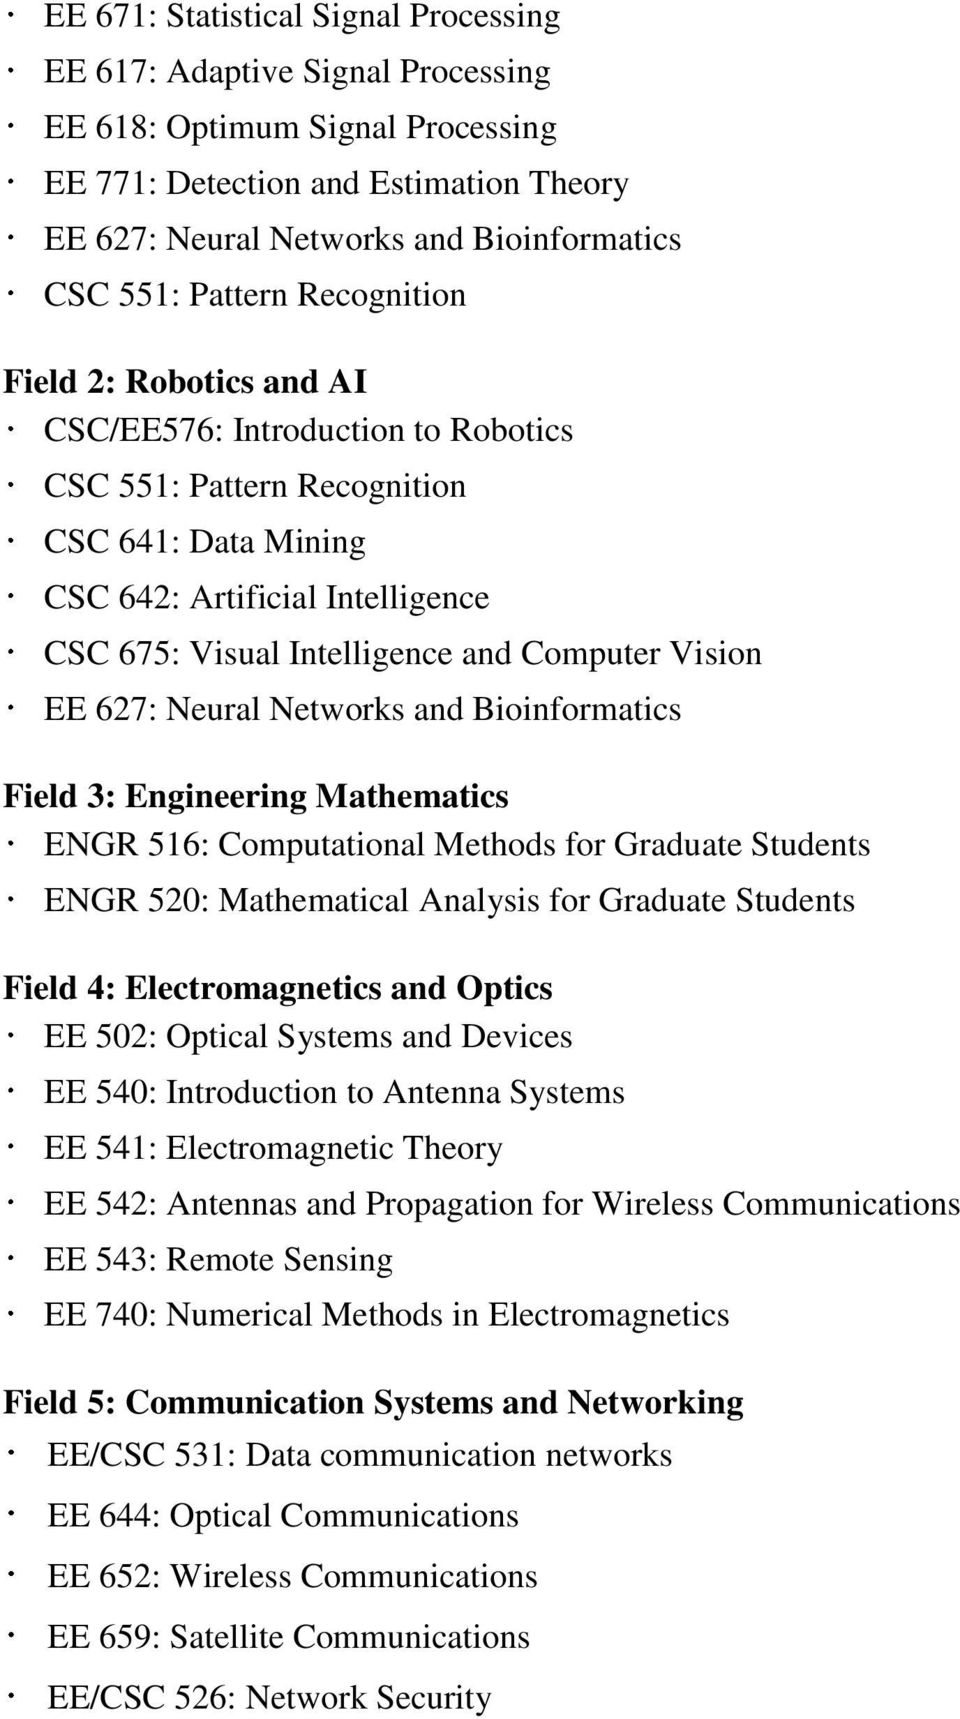 Computational Methods for Graduate Students ENGR 520: Mathematical Analysis for Graduate Students Field 4: Electromagnetics and Optics EE 502: Optical Systems and Devices EE 540: Introduction to